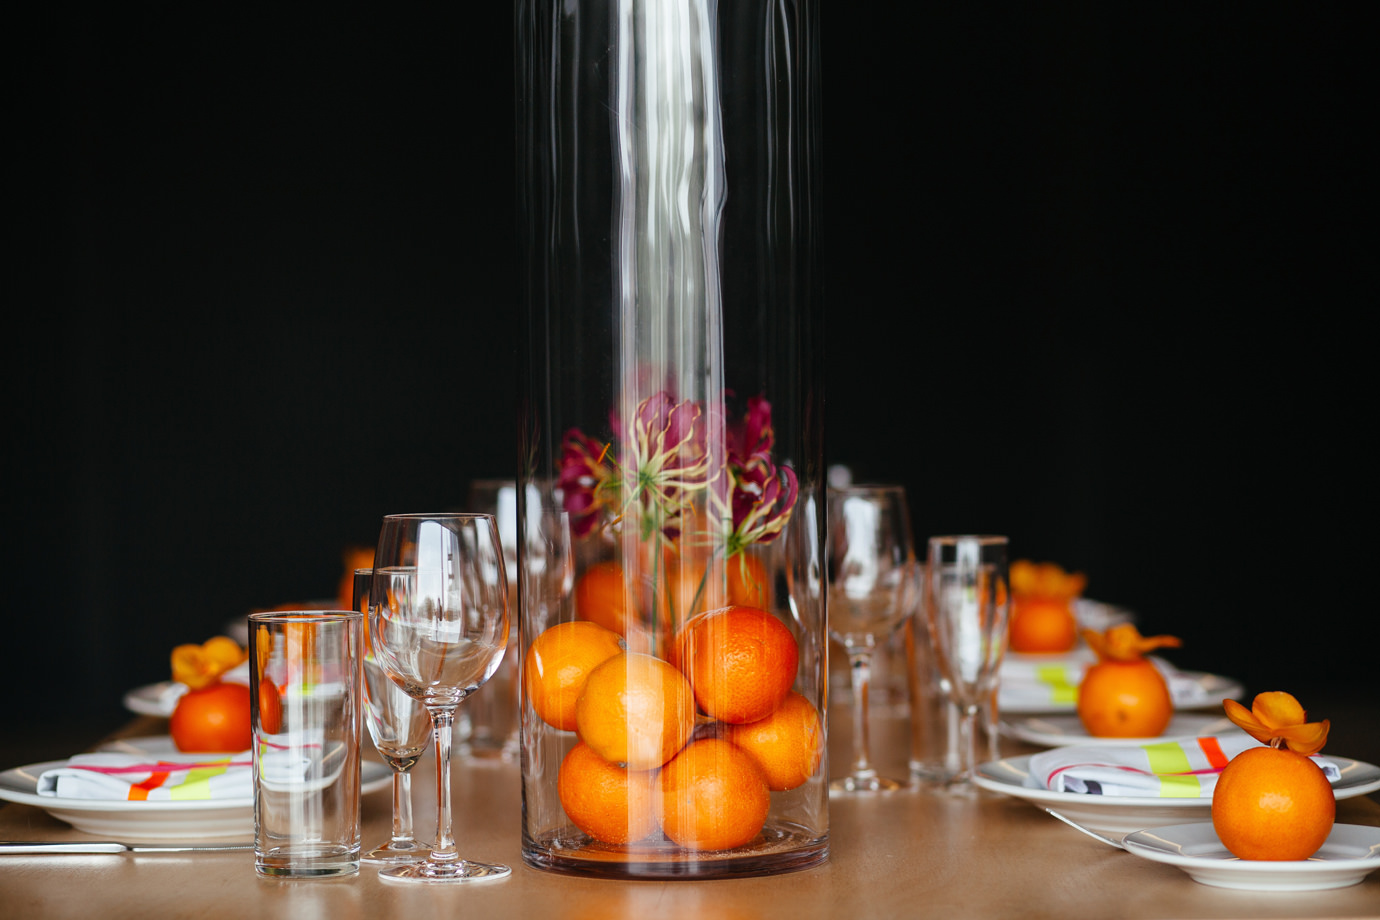 Bespoke orange table decorations at the Hepworth